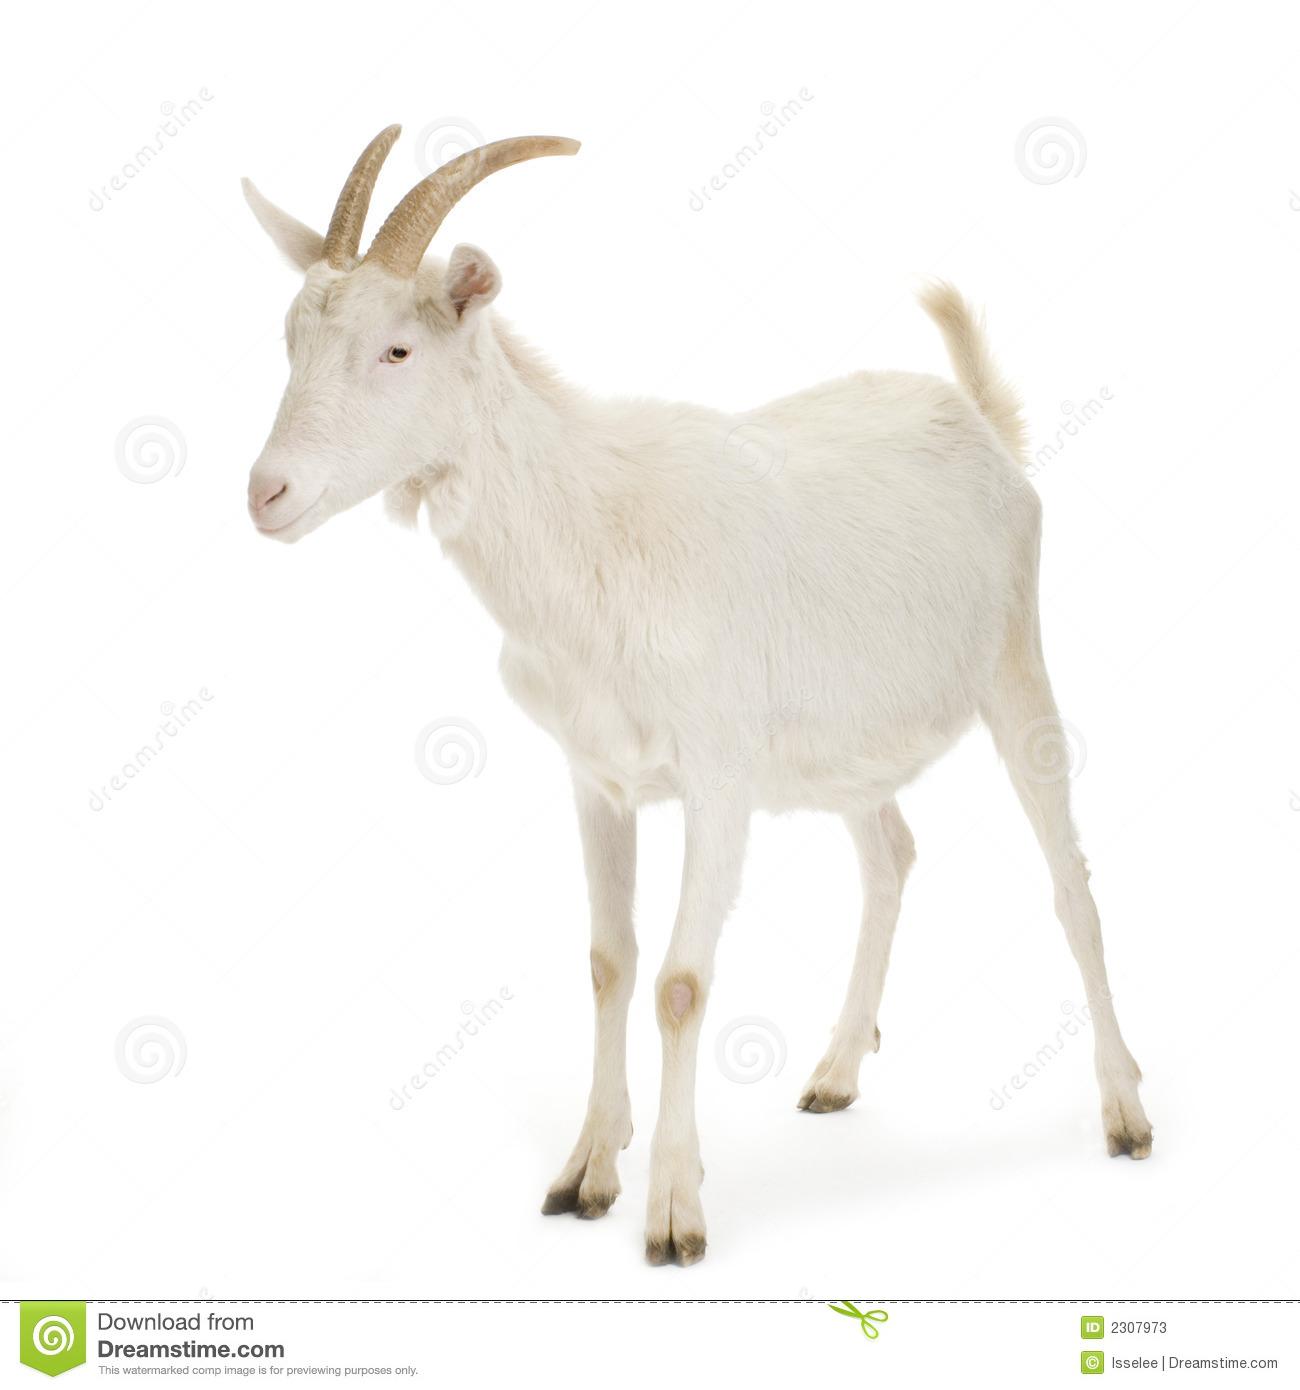 Goat standing up isolated on a white background.